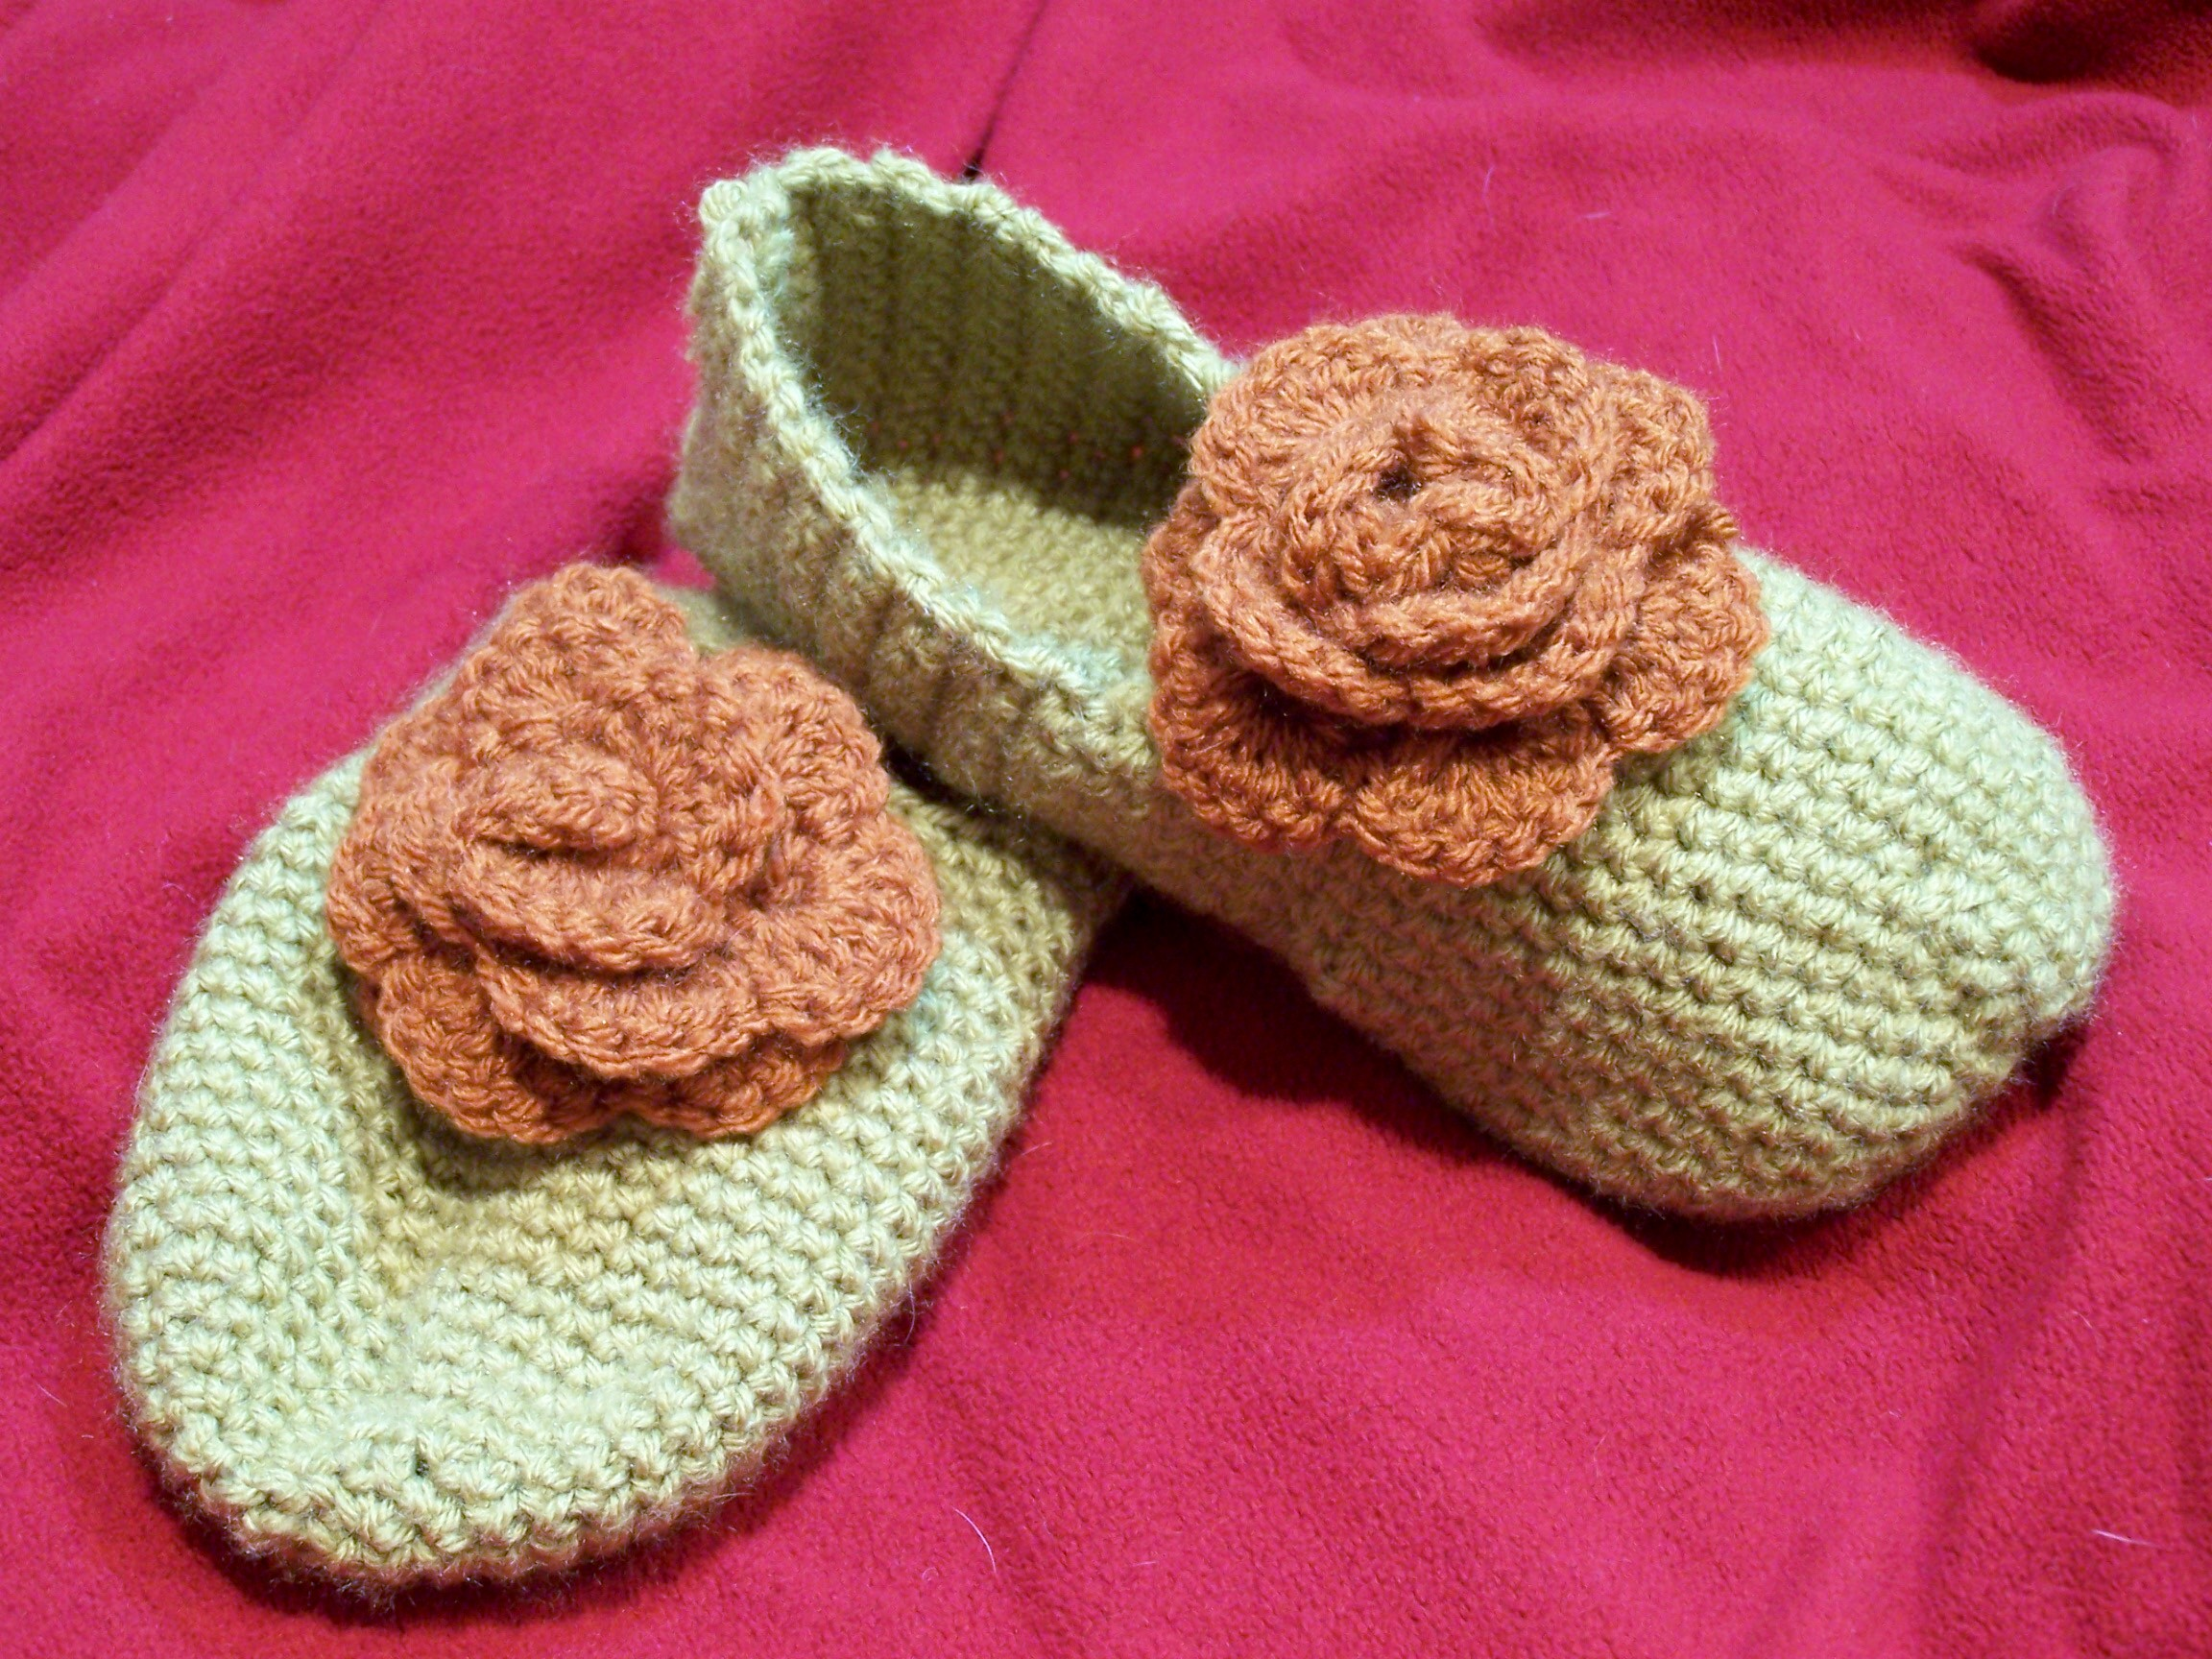 Cosy crocheted slippers - Canadian Living